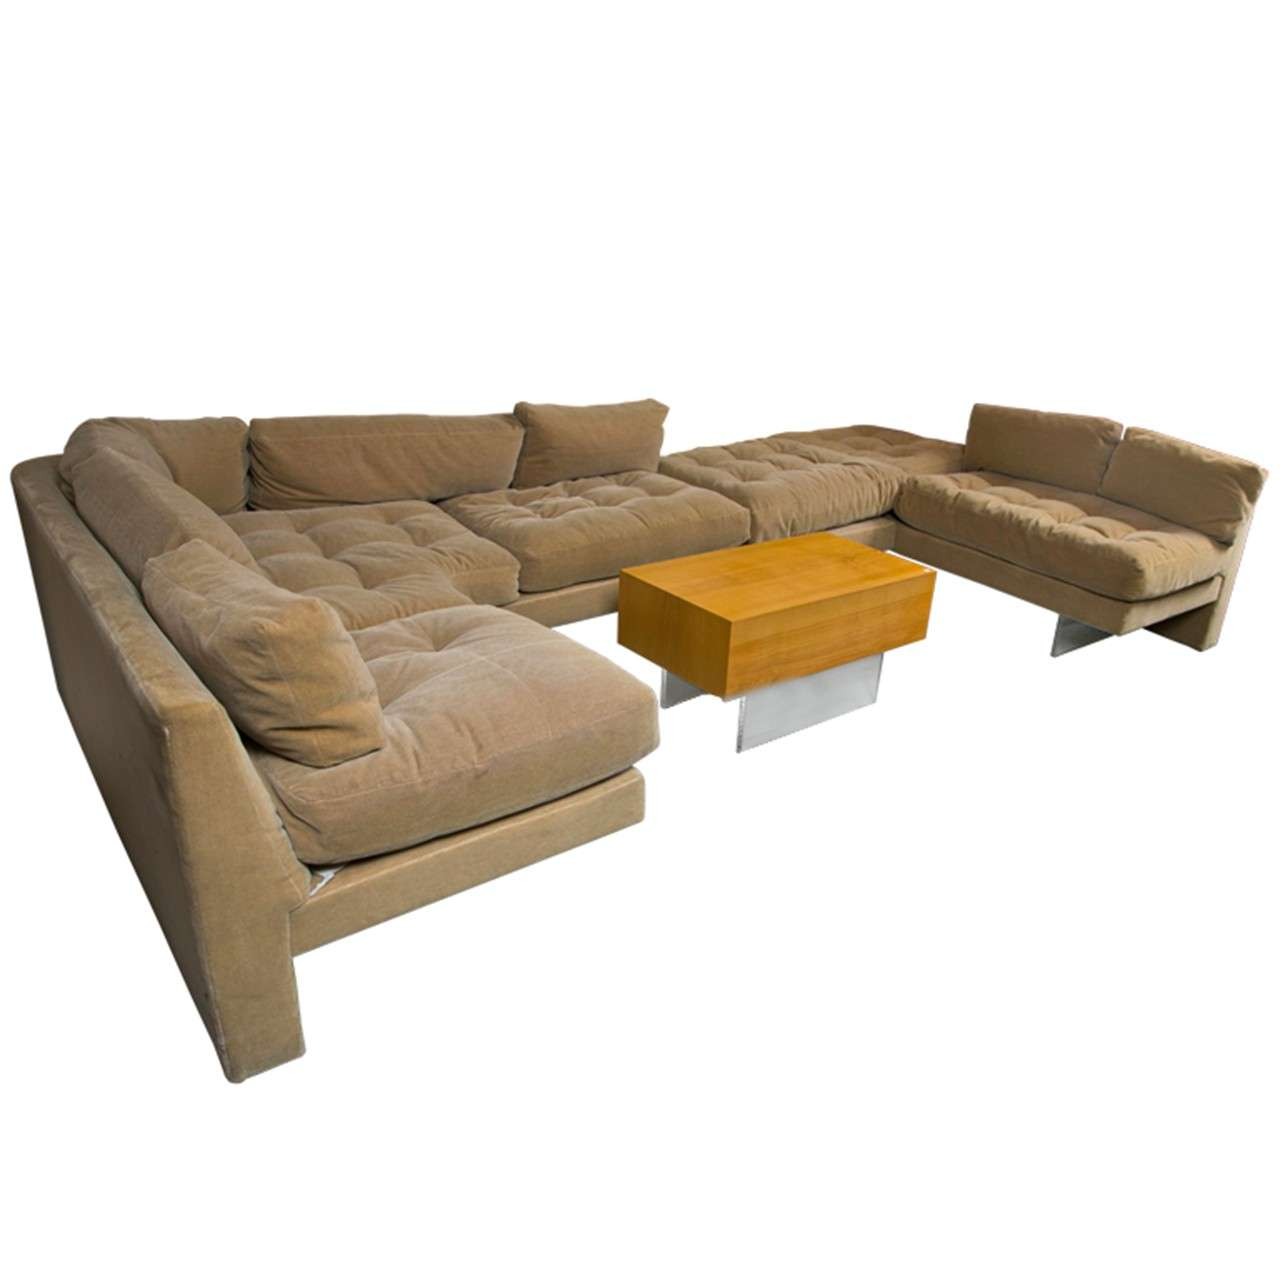 Mid Century Vladmimir Kagan Sectional Sofa And Coffee Table Set At 1stdibs